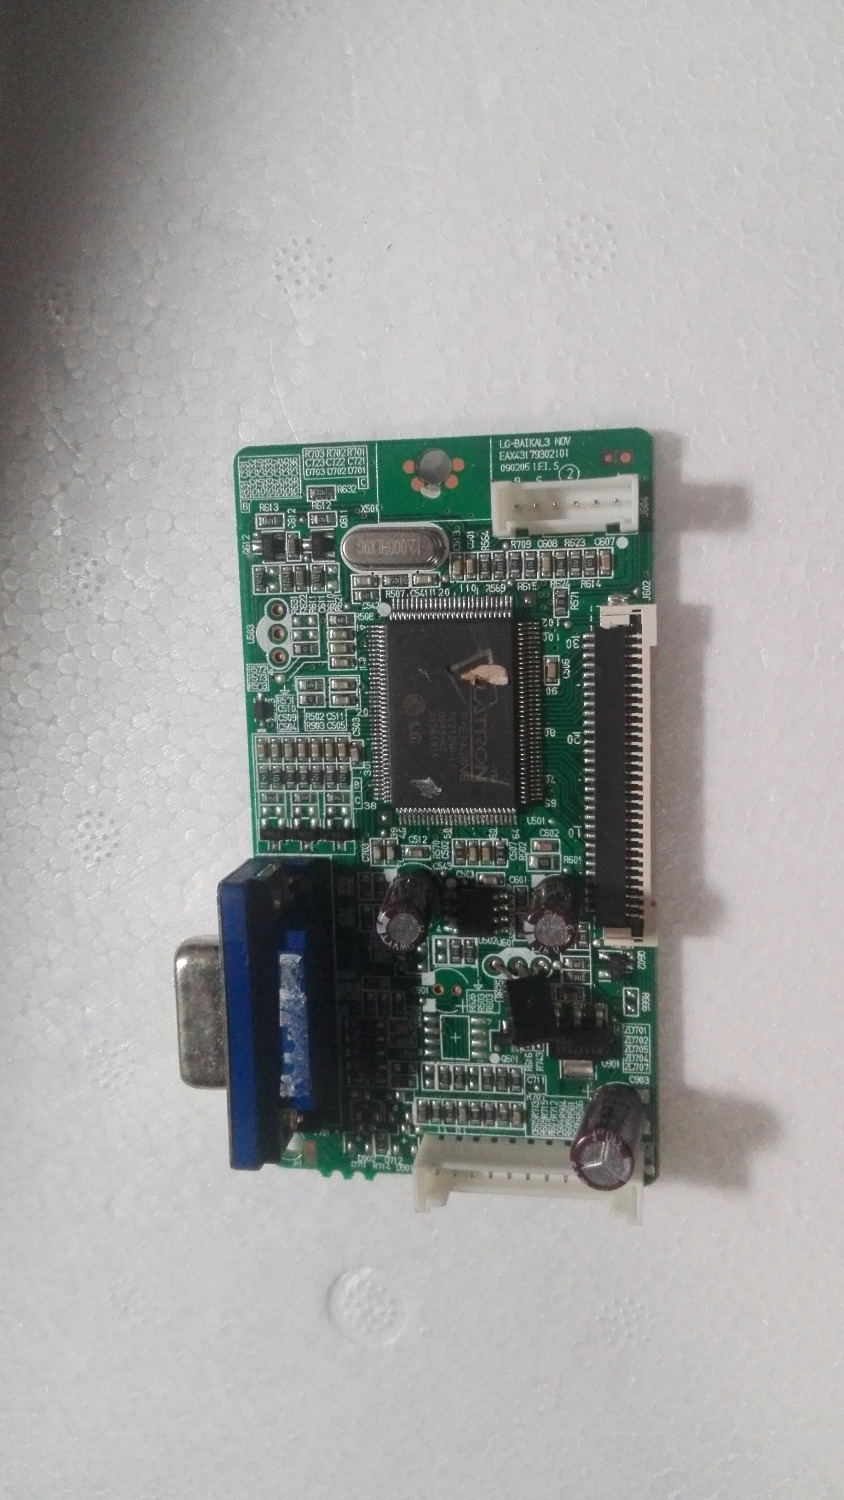 Driver board For 22MP55HQ-P 23 24MP55HQ-P 27MP55HQ-P Good Working Tested the wallflower 22 23 24